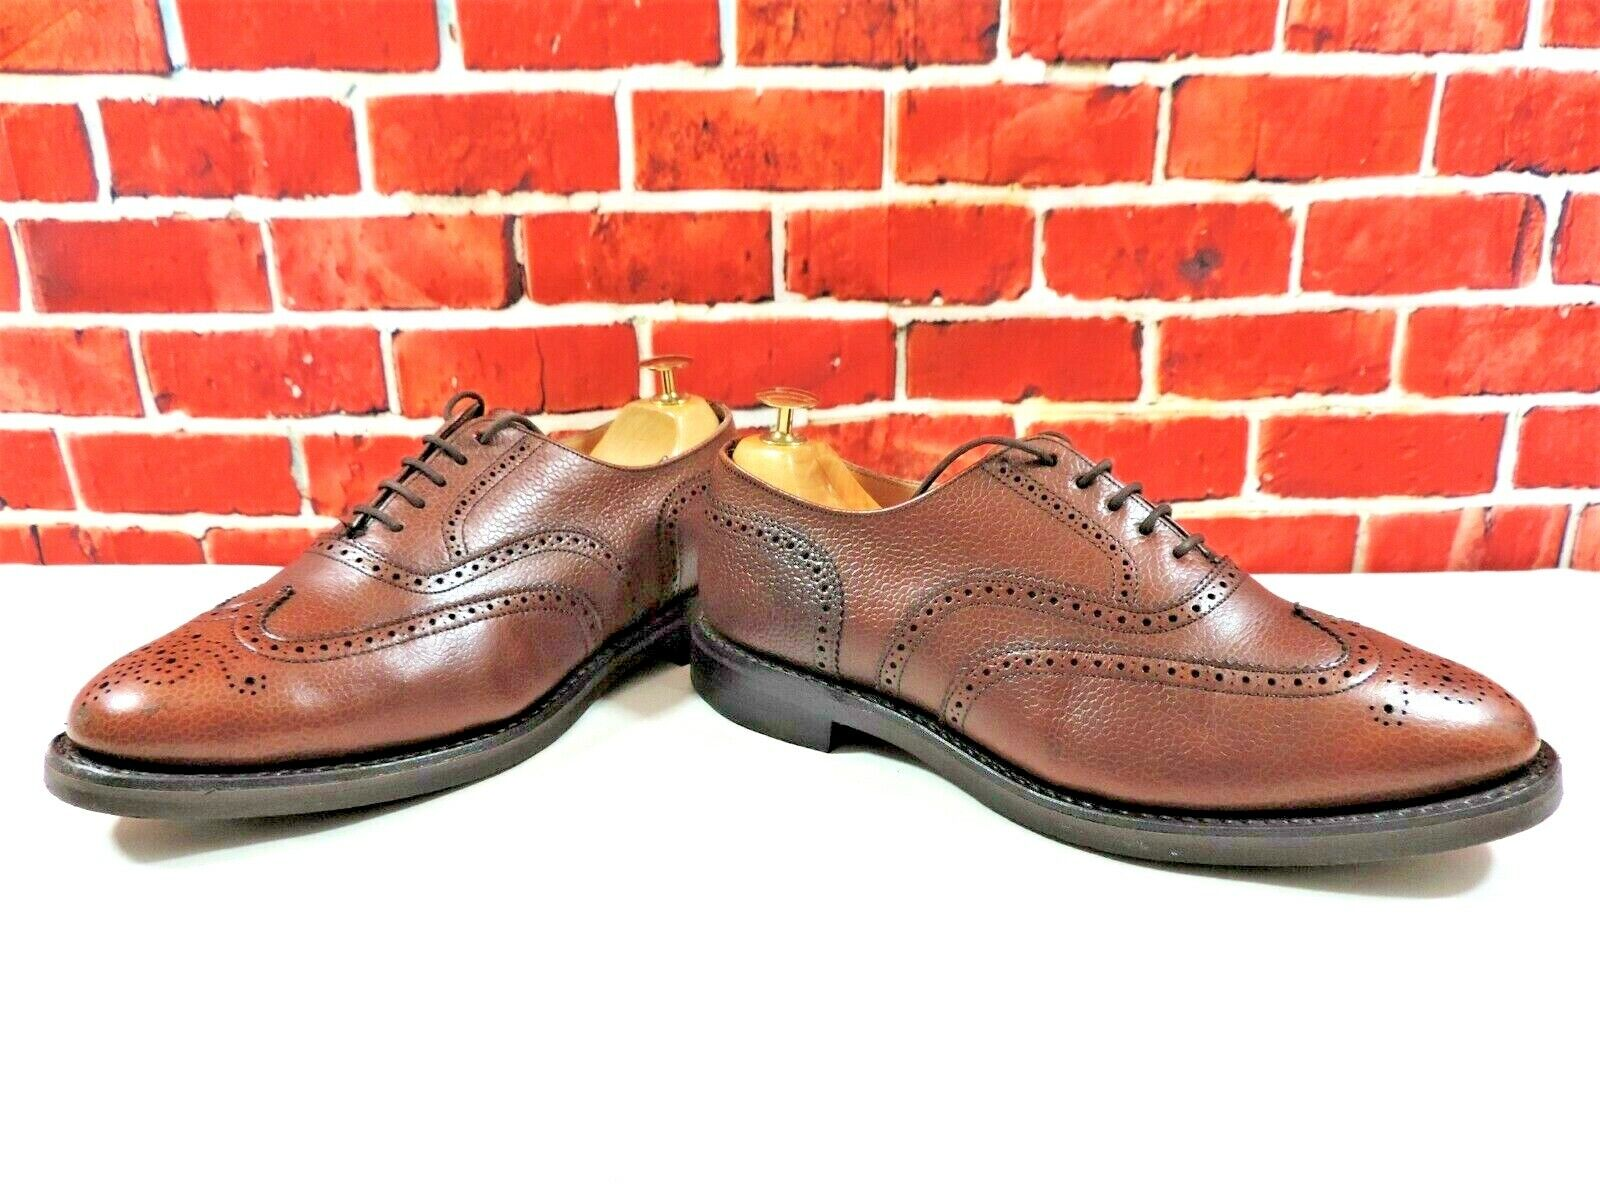 Church's Brogues Dainite Soles US 8 Minor use only Full Grain Calf